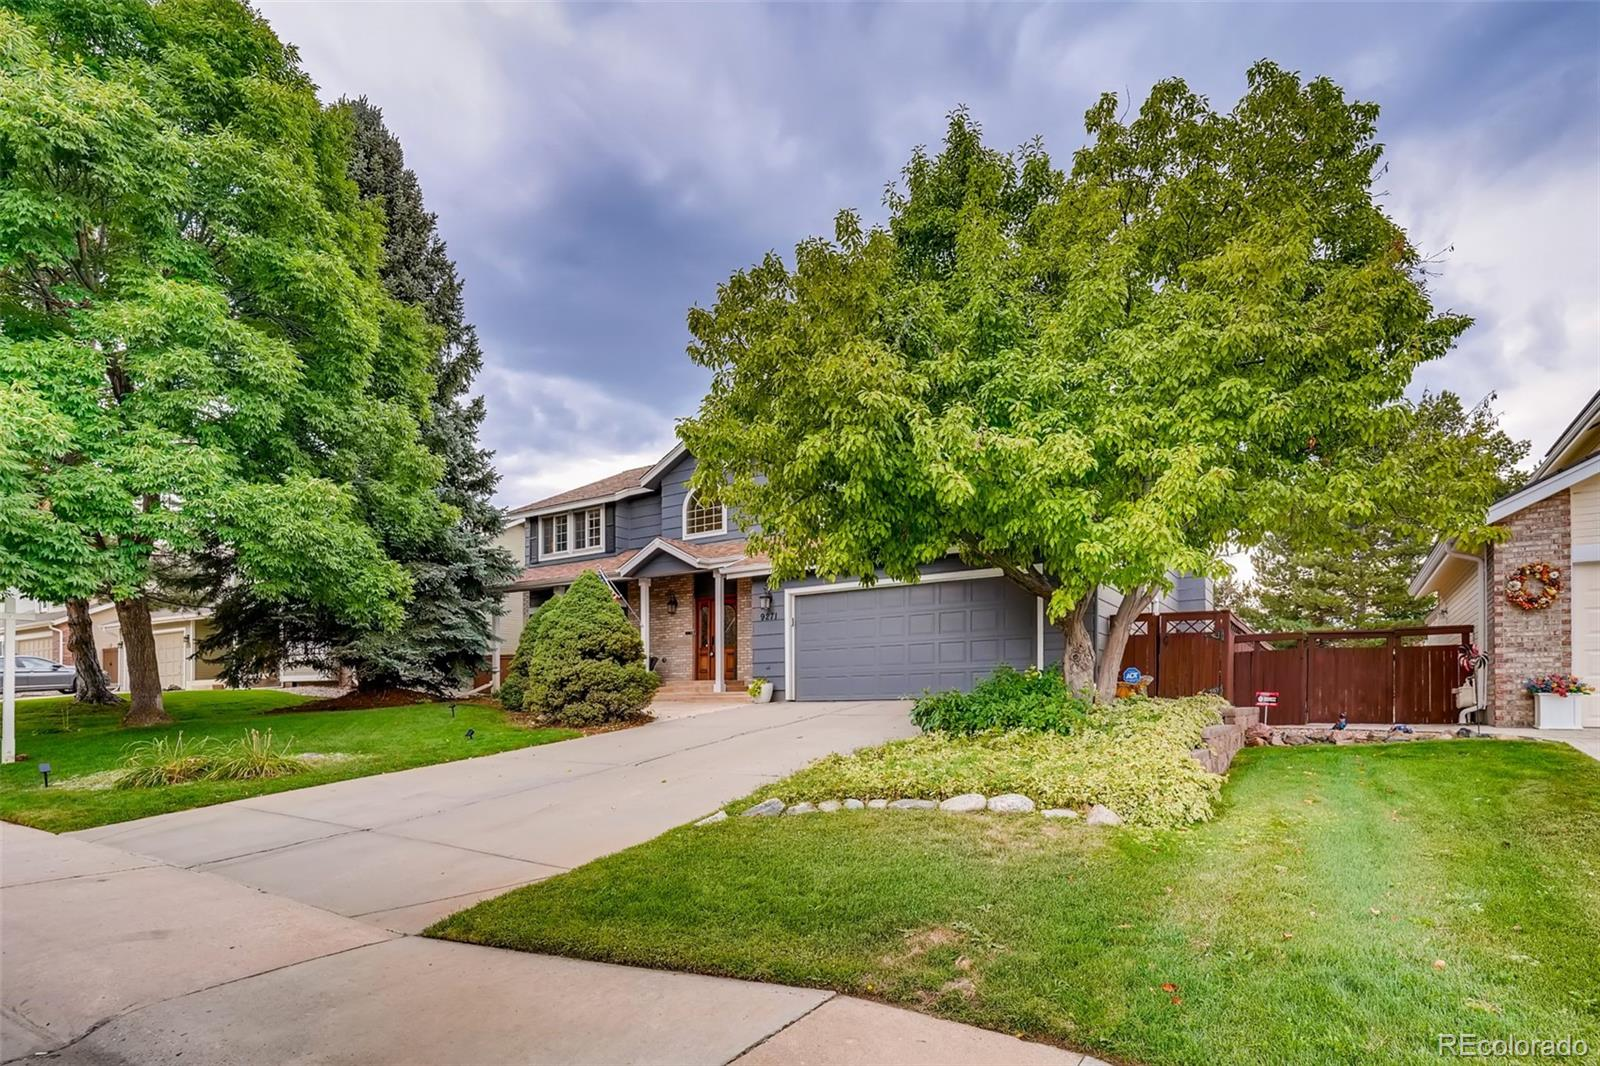 9271 Crestmore Way, Highlands Ranch, CO 80126